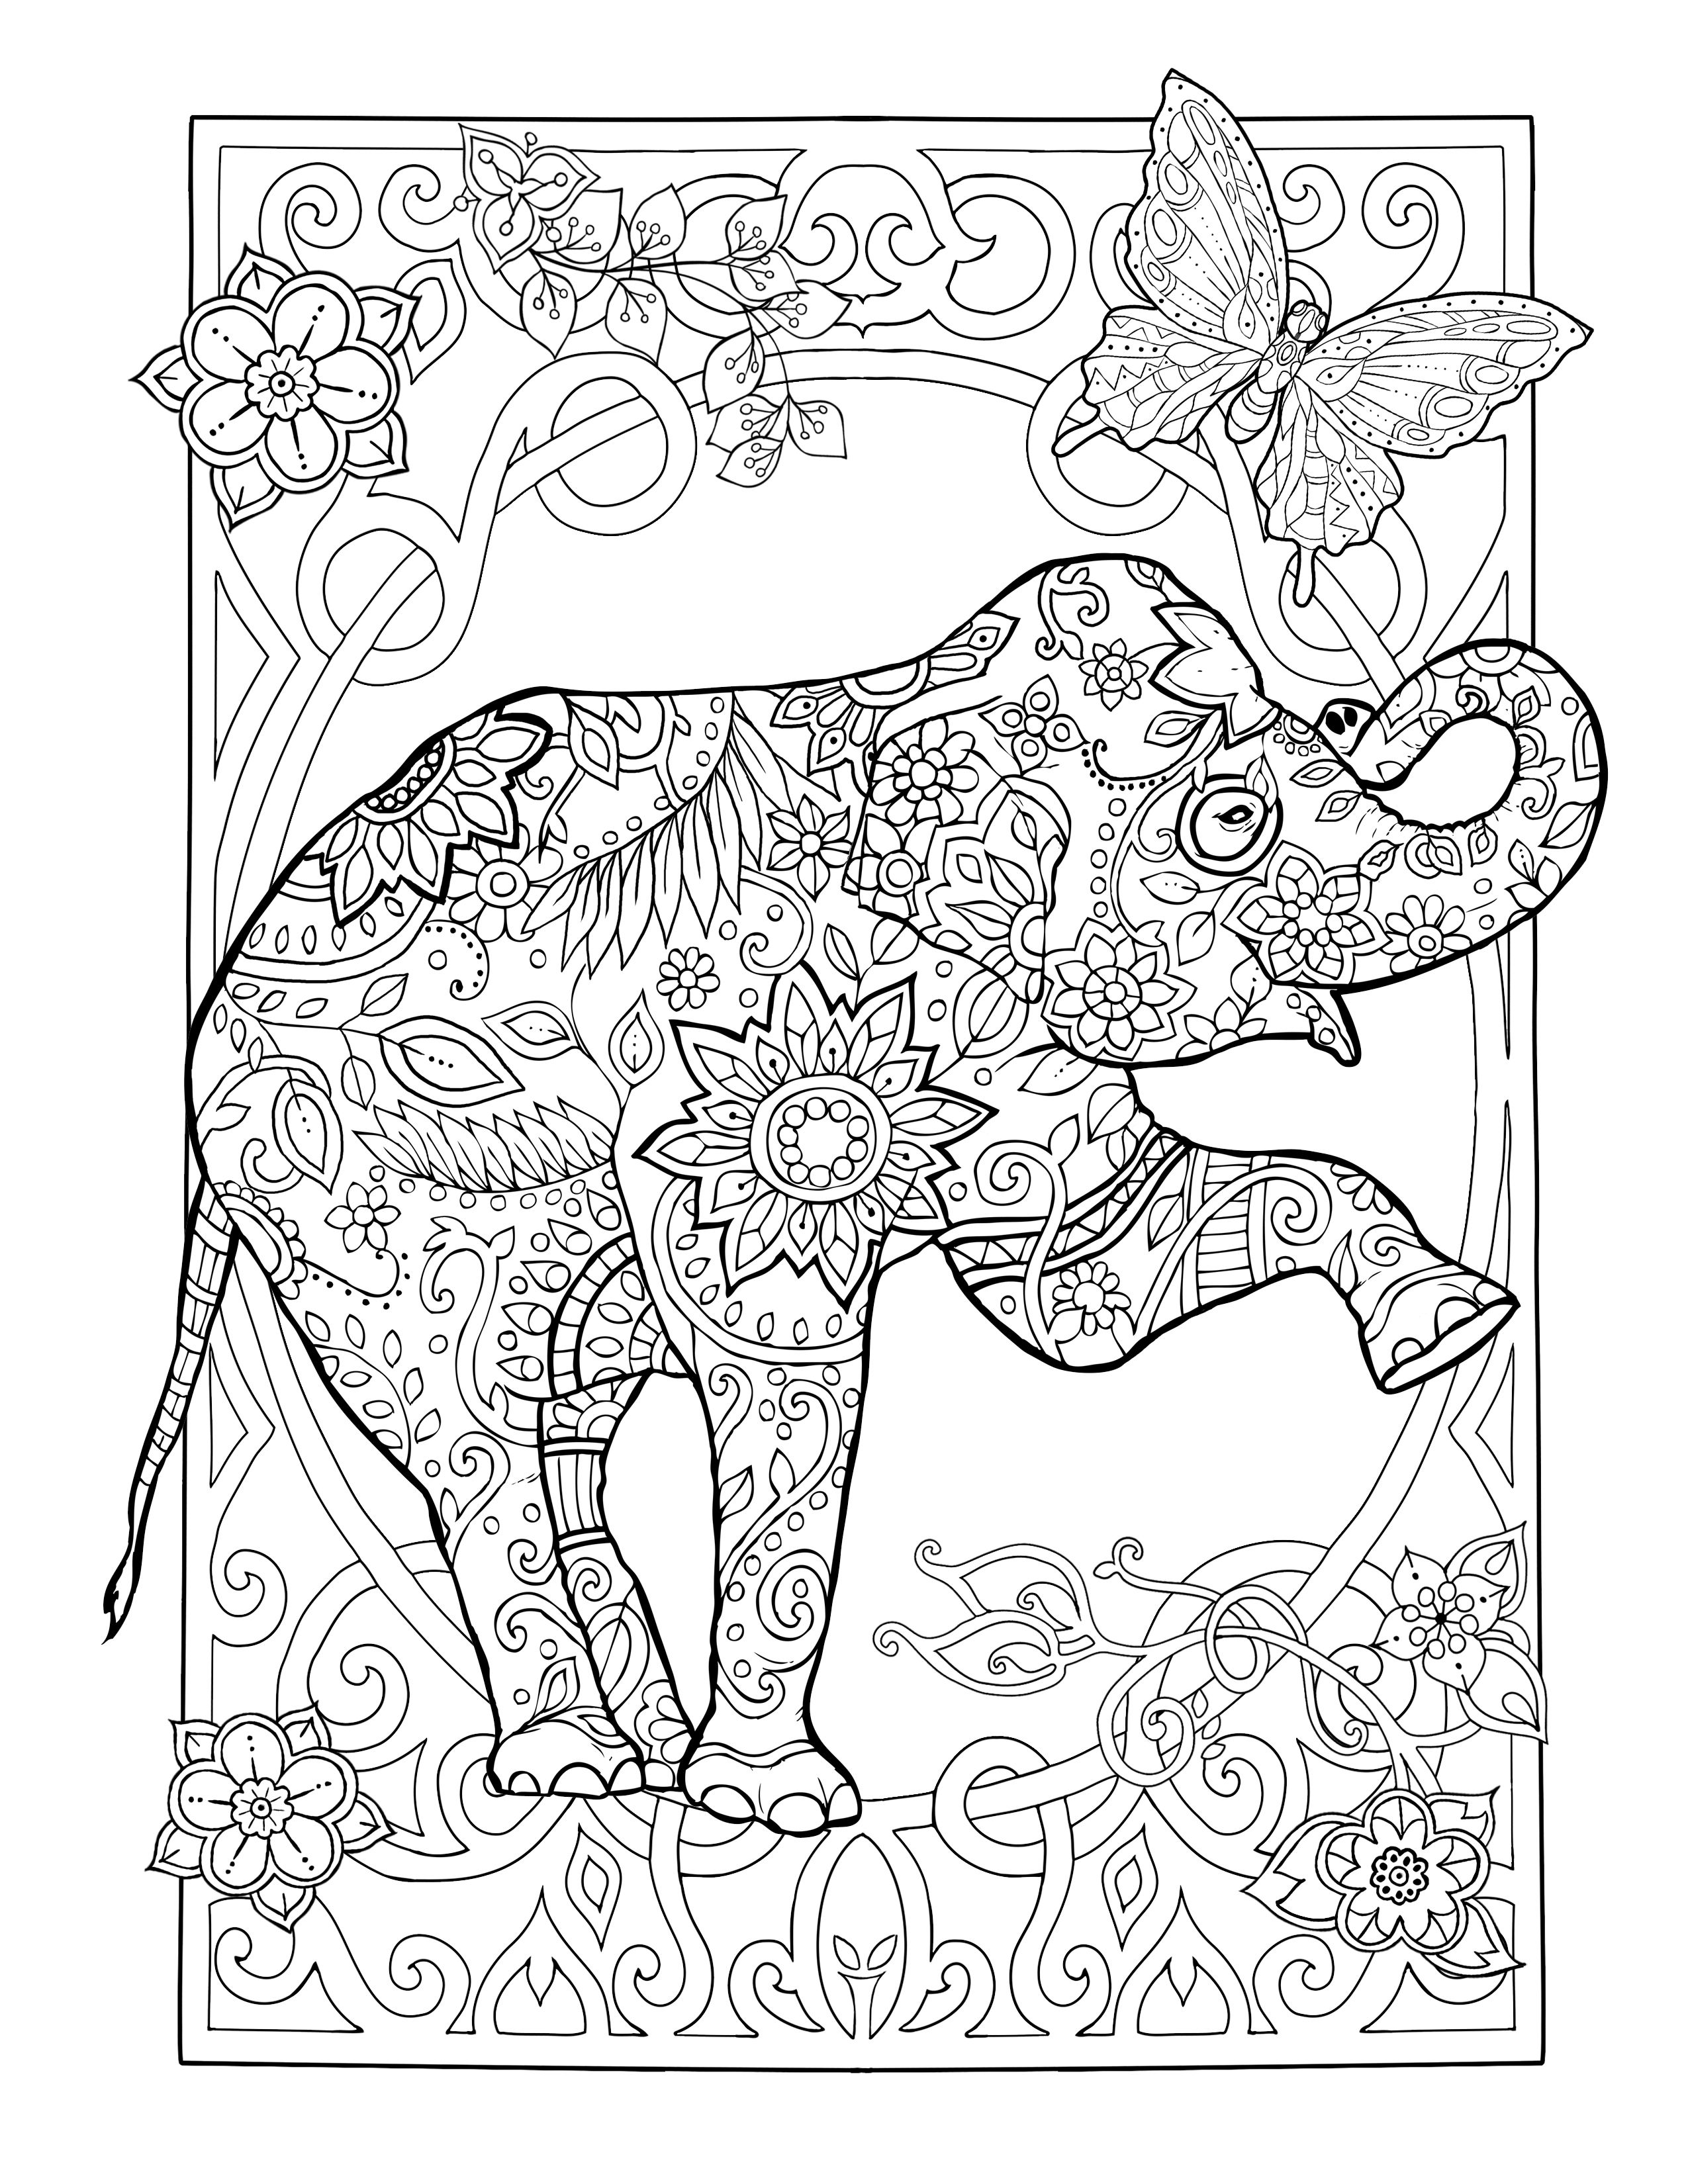 Amazing Coloring Book For Adults Packed With Beautiful Animals Elephant Coloring Page Coloring Books Animal Coloring Pages